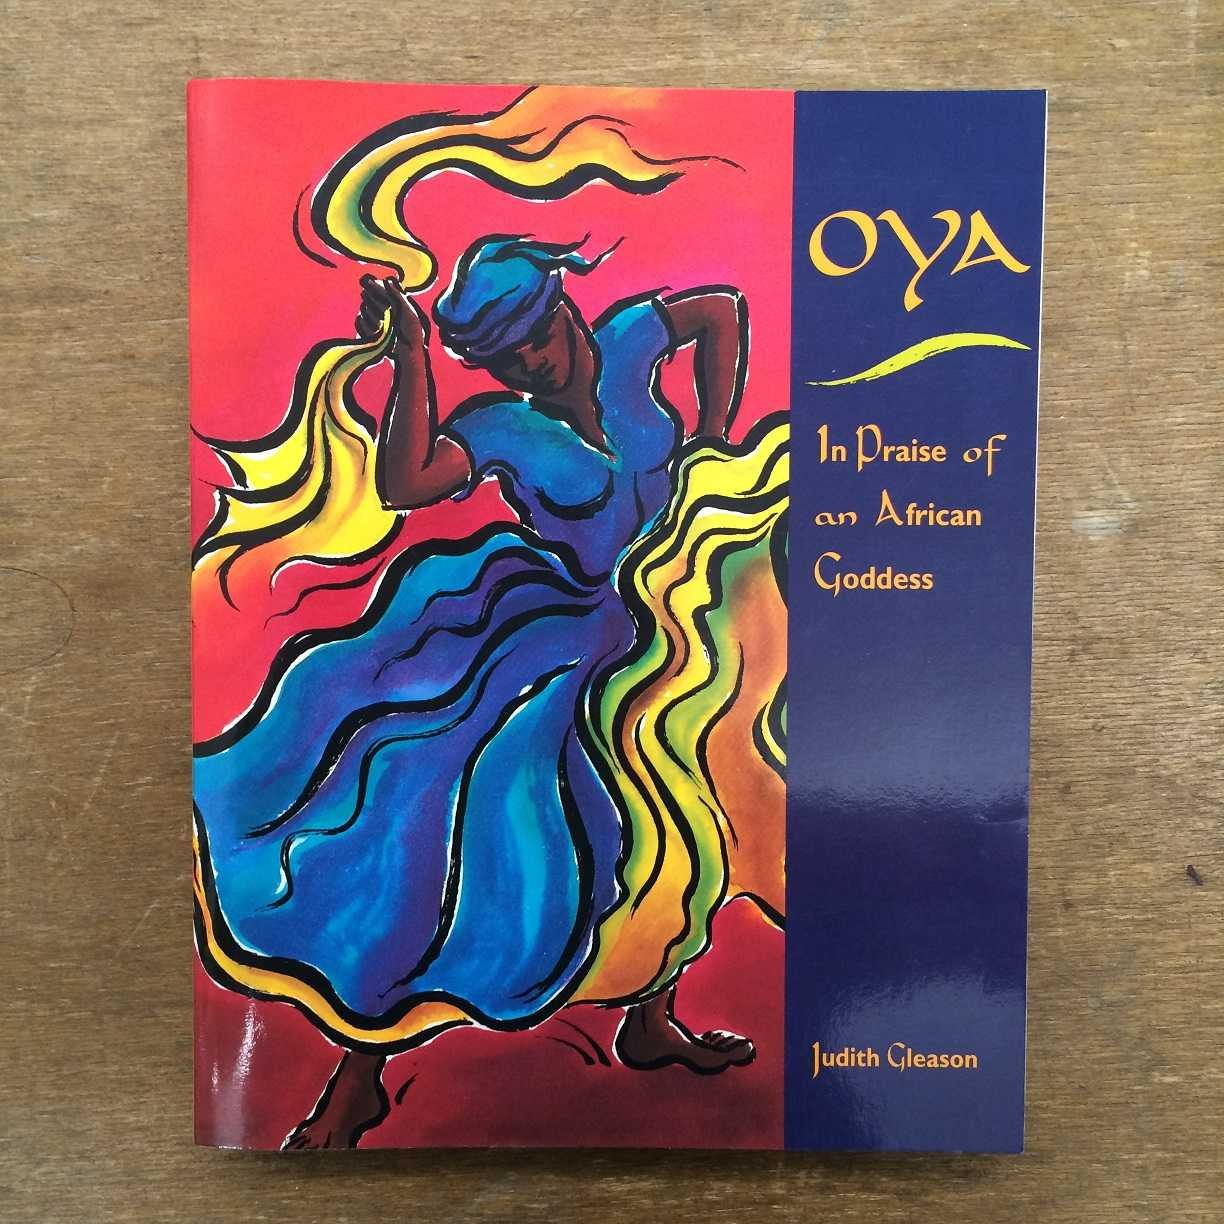 Oya: In Praise of an African Goddess